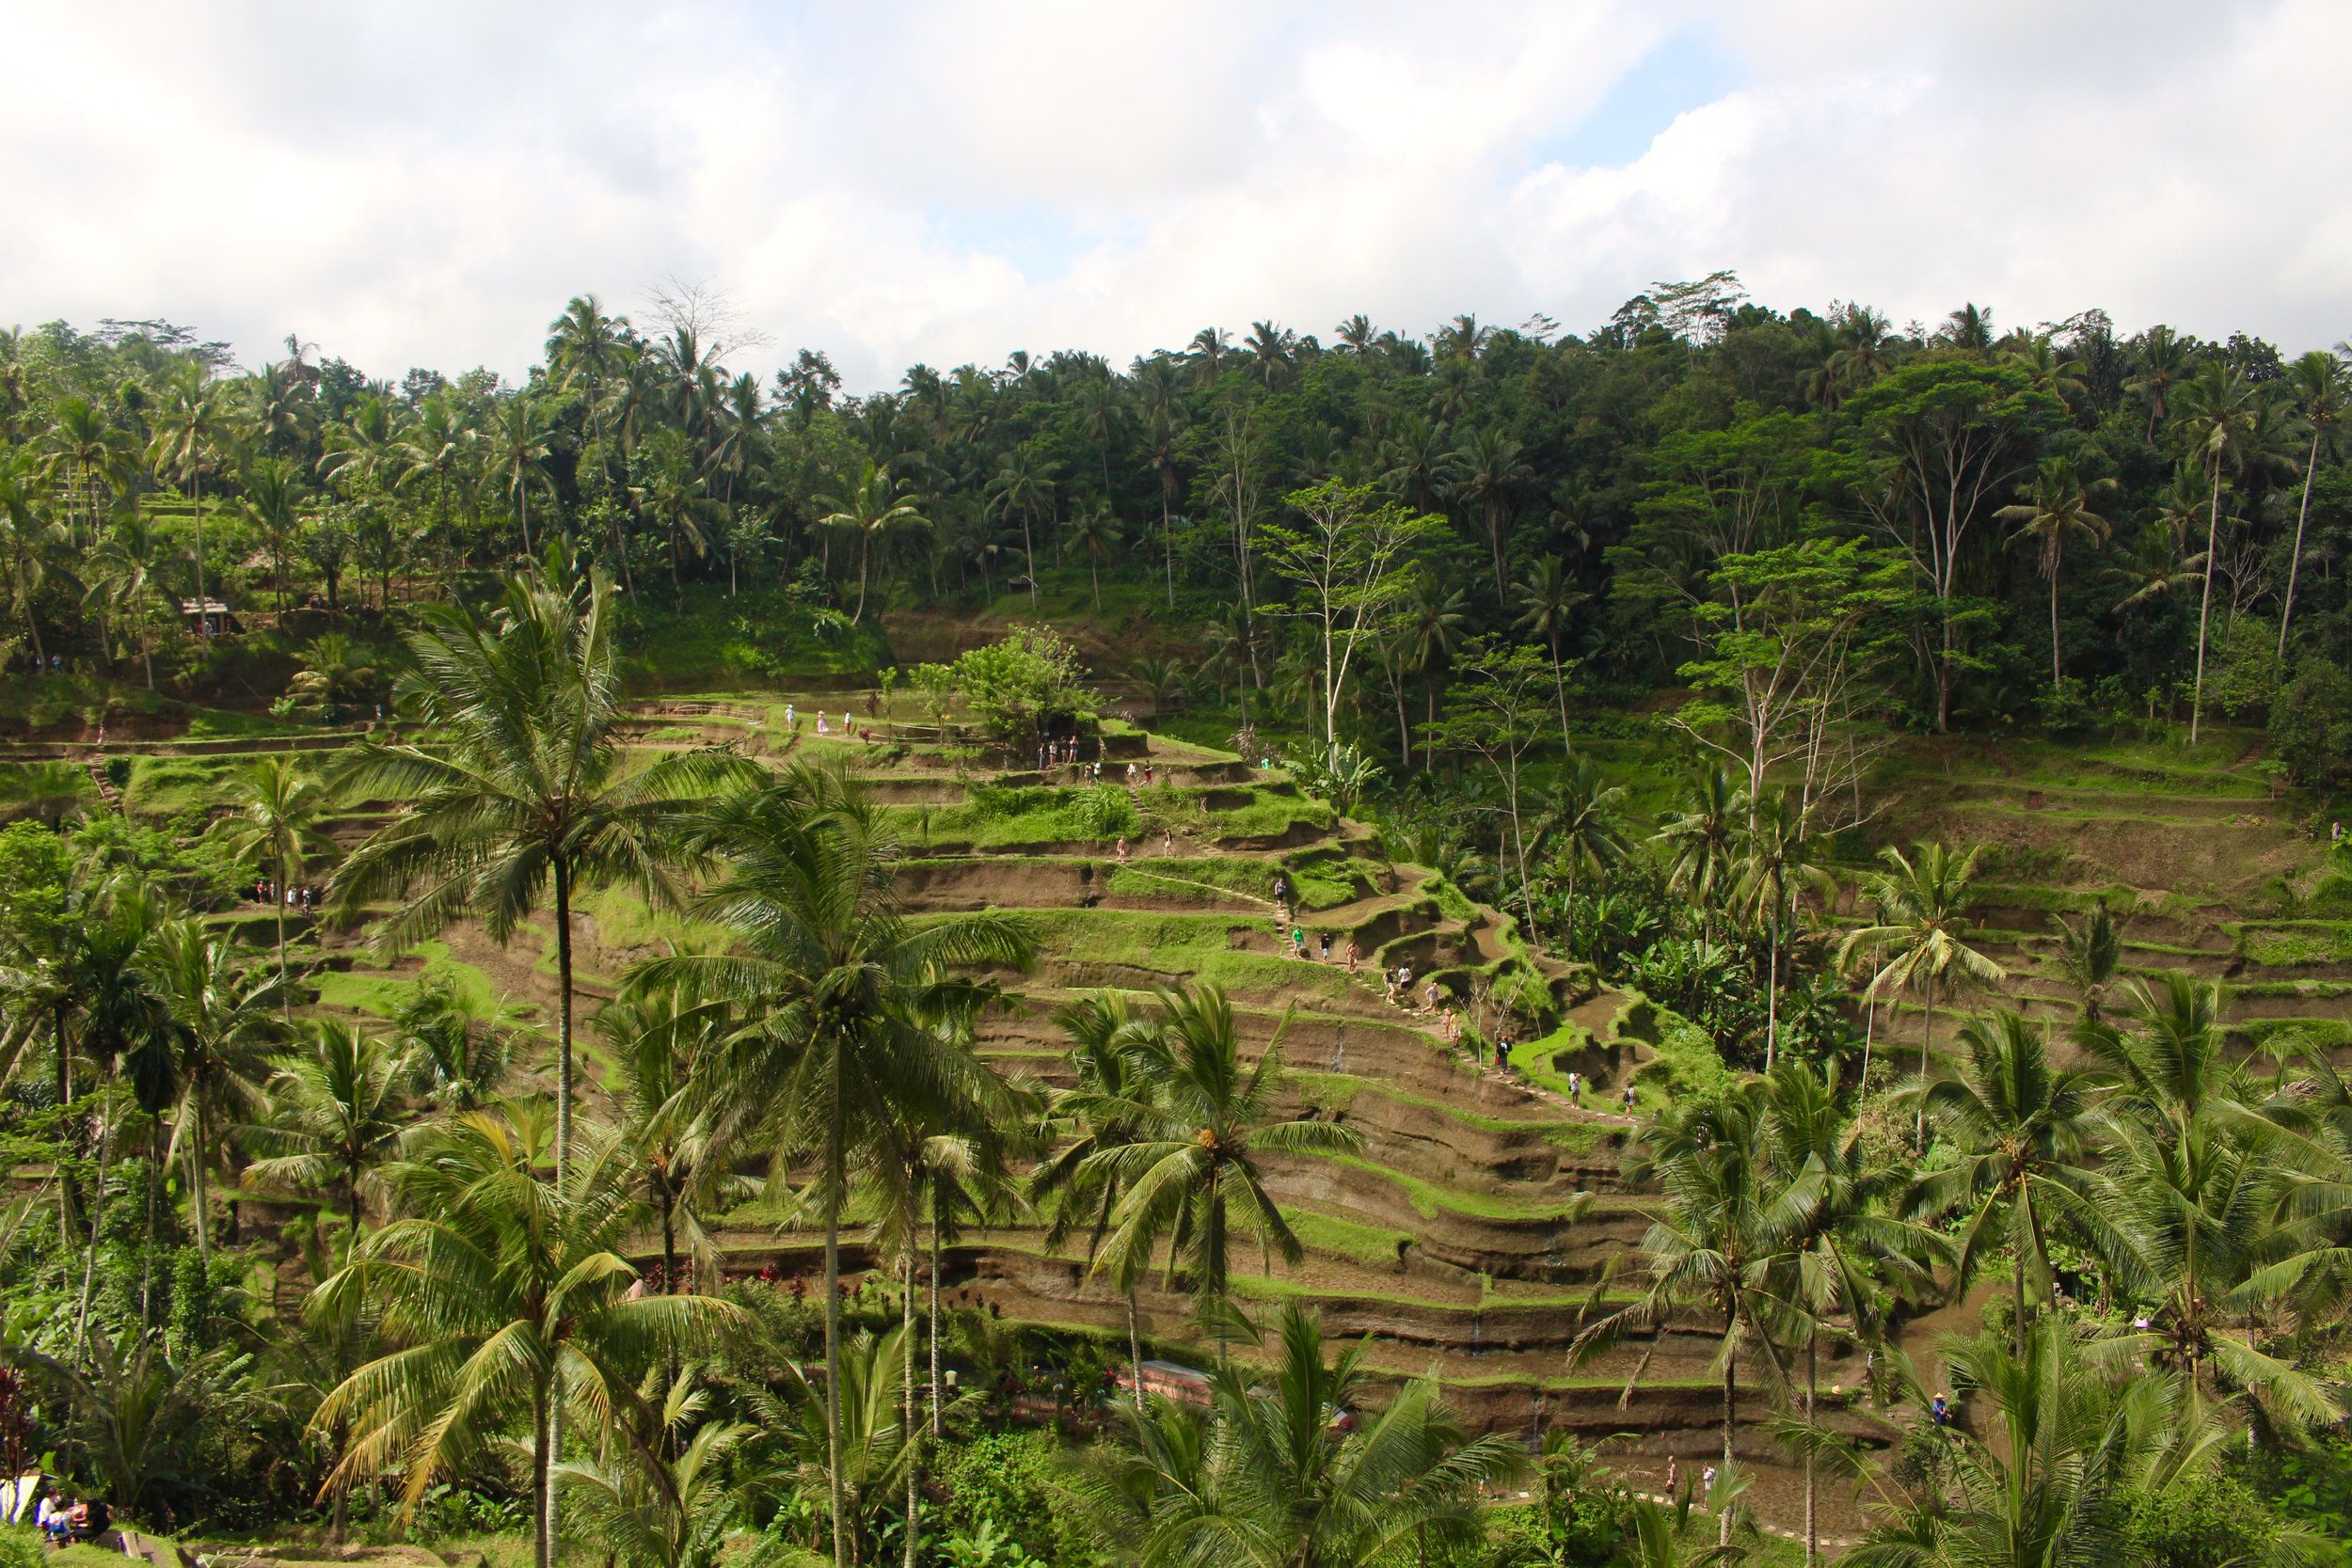 Some of the amazing rice terraces in Bali